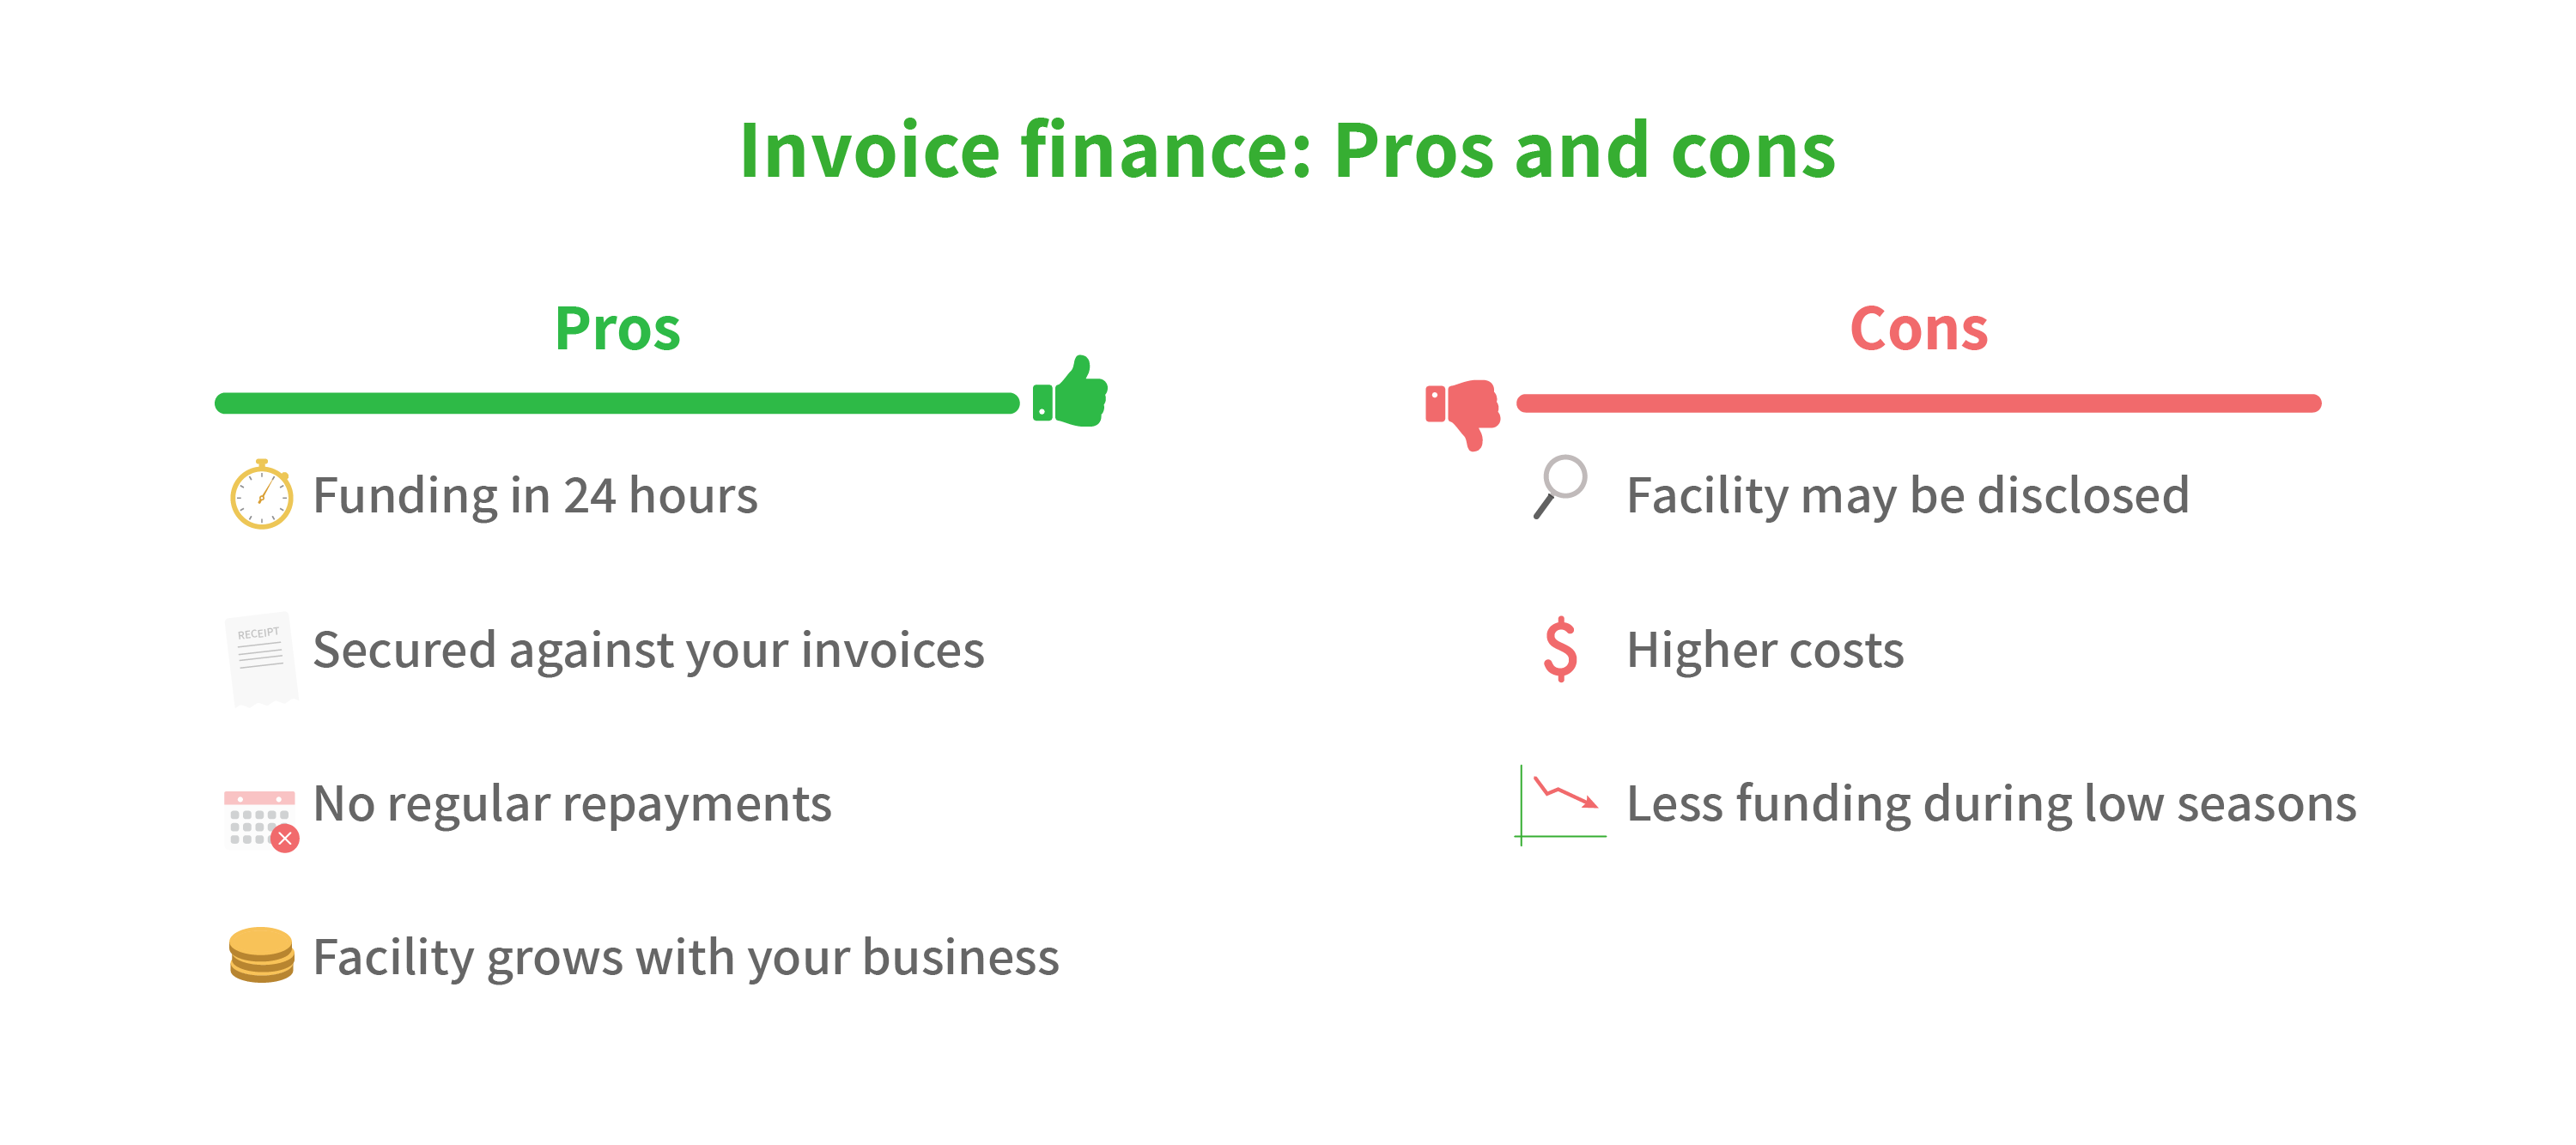 Invoice finance pros and cons